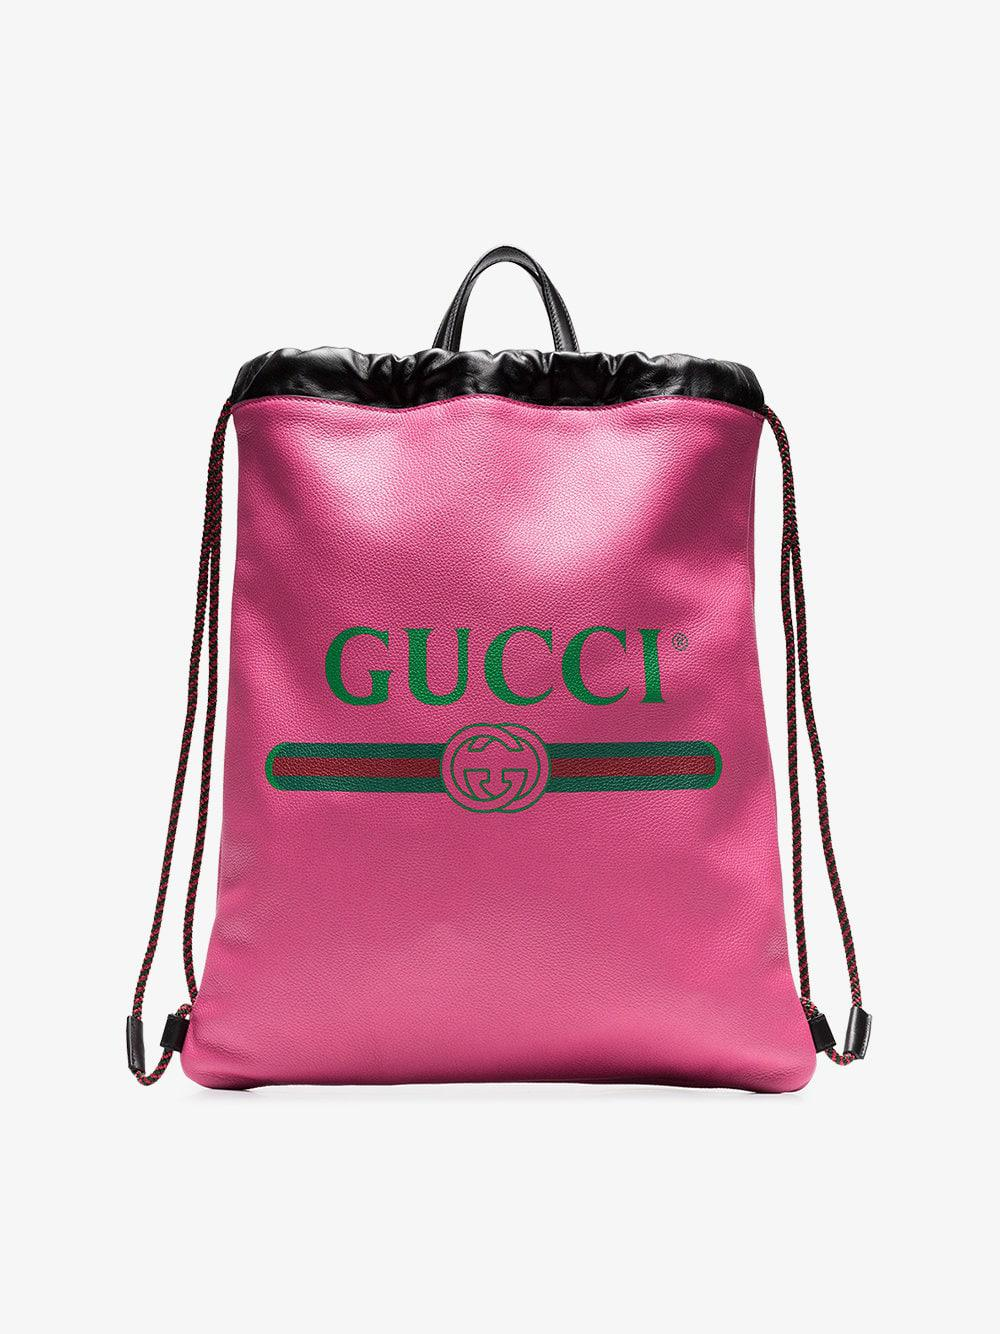 Gucci - Pink Logo Print Leather Backpack for Men - Lyst. View fullscreen 8915d3da04